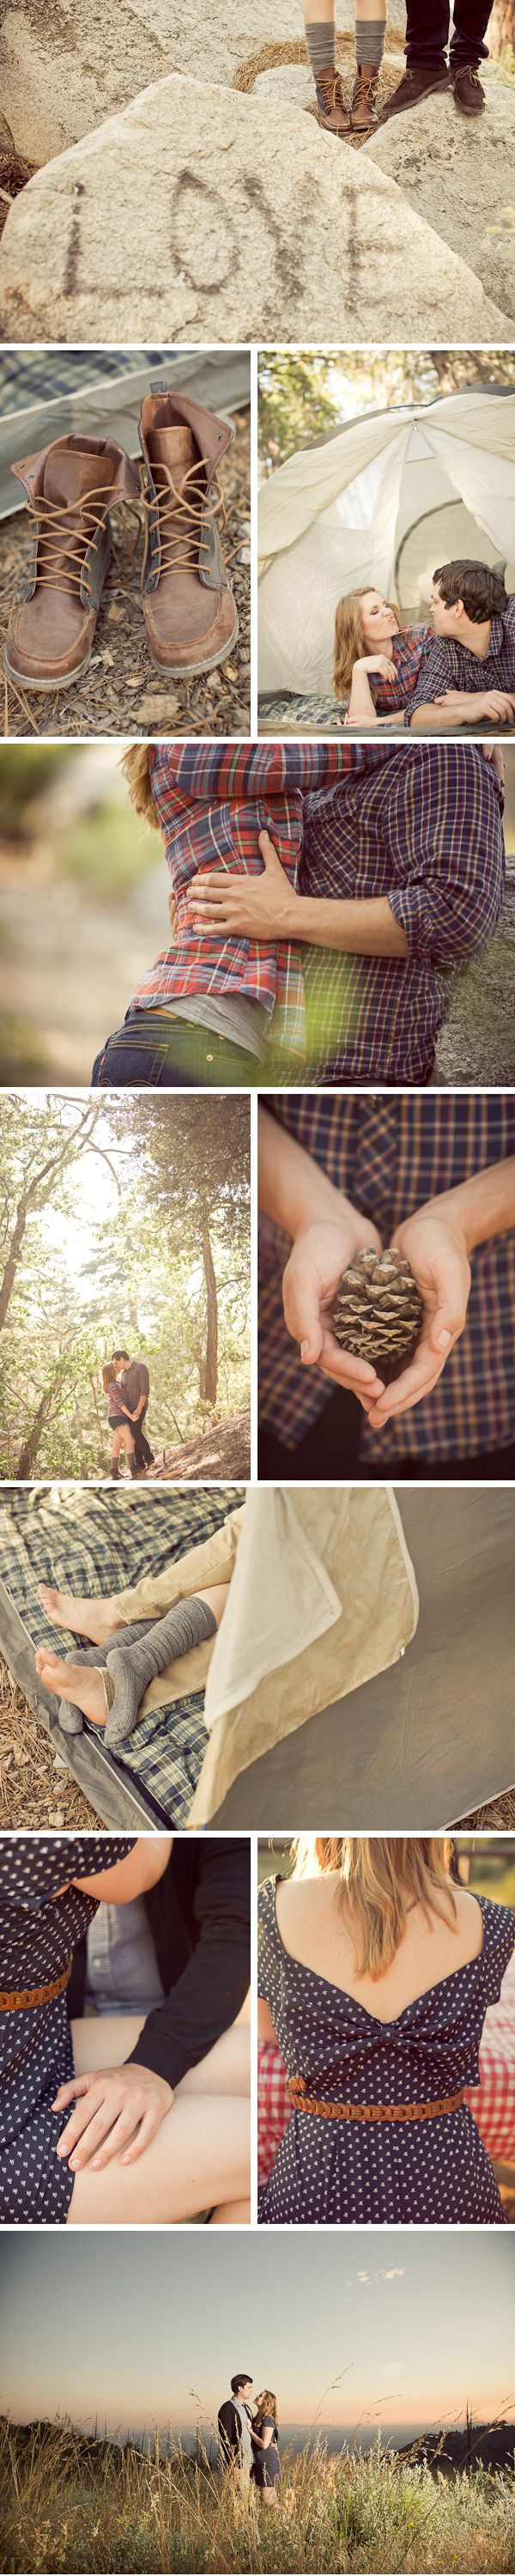 another storyboard i love.: Picture, Photo Collage, Photo Ideas, Camping Photo Shoot, Wedding, Engagement Shoot, Camping Engagement Photo, Couples Engagement